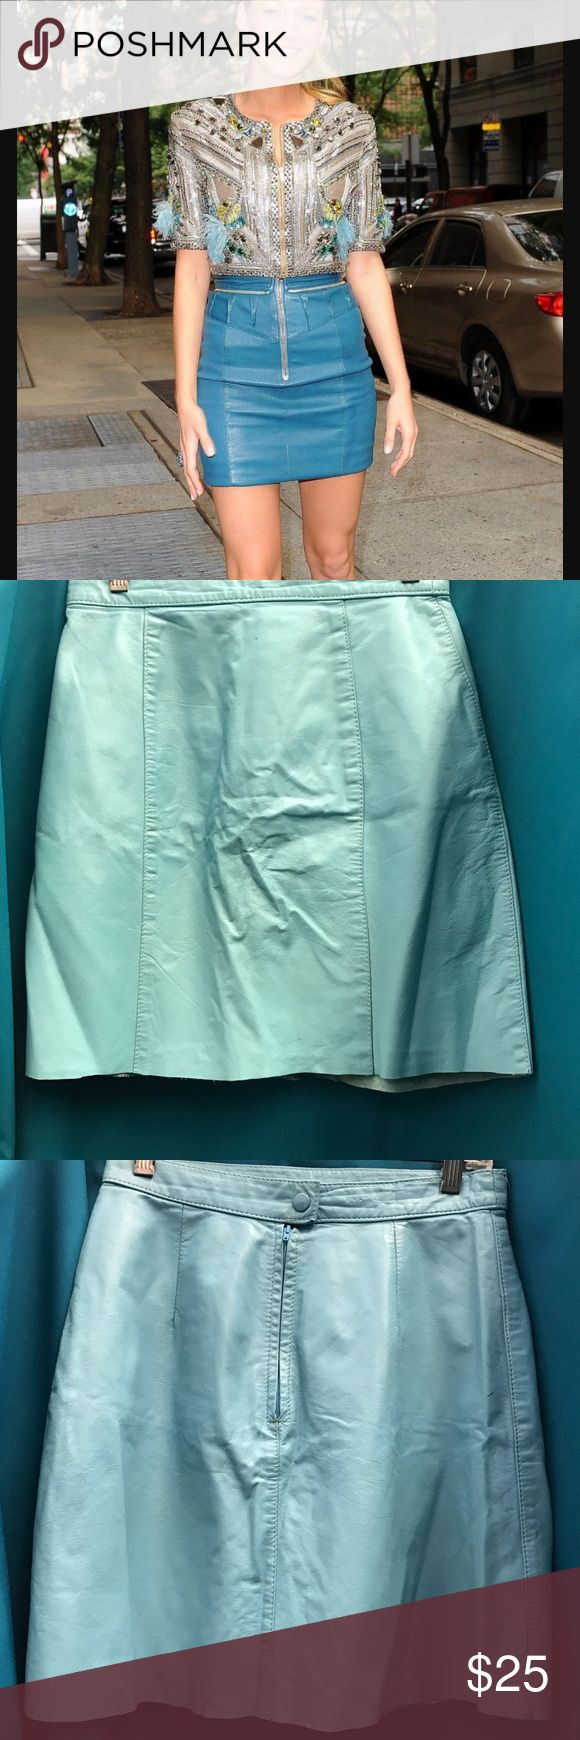 Genuine Leather Carolina Blue mini skirt Channel your inner Blake Lively! 100% Genuine Leather shell. 100% acetate lining. Zipper in back and snap button. Made in Argentina. Skirt has signs of wear as pictured. Tag says size 9/10 but it fits like a small. Brand: Comint. Carolina / Baby blue Skirts Mini